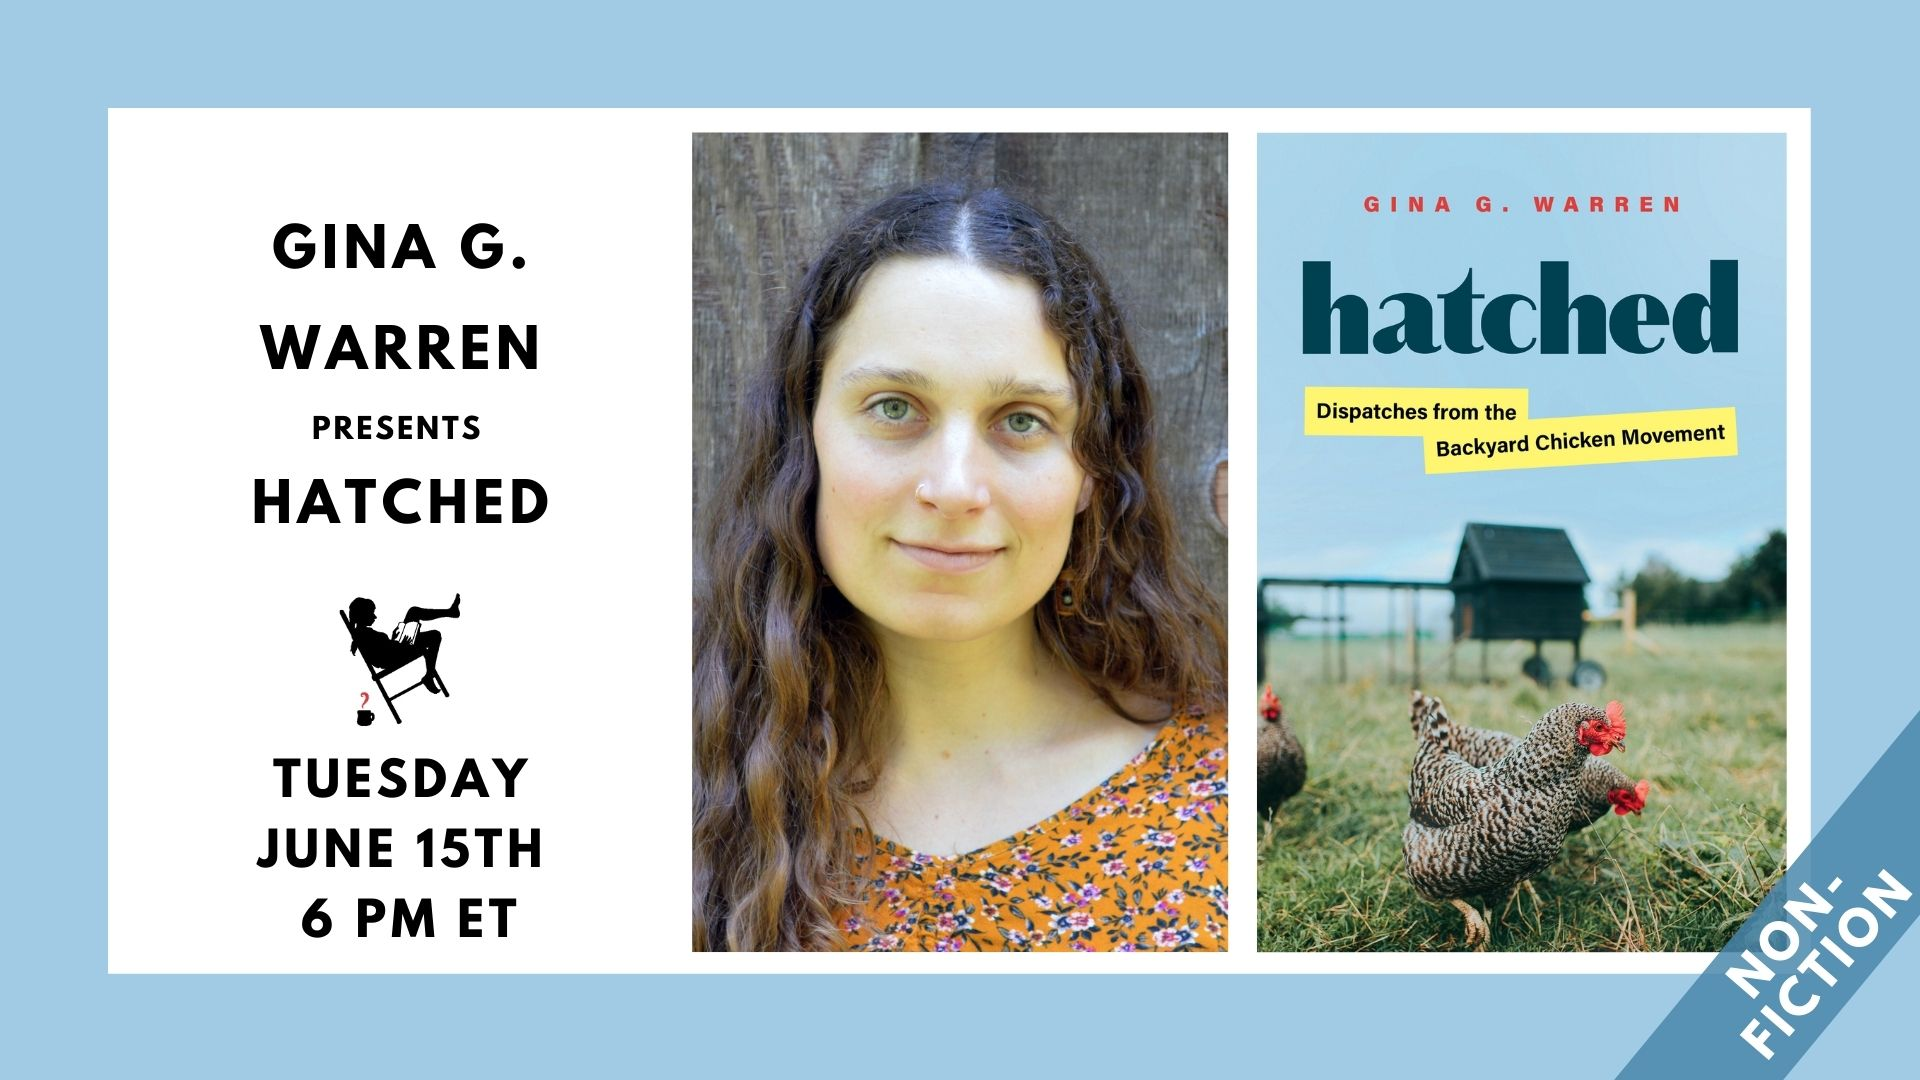 Image is of a tan border with white block containing: the HATCHED book cover; the name and headshot for Gina G. Warren; and the event date of 6/15/21 at 6pm